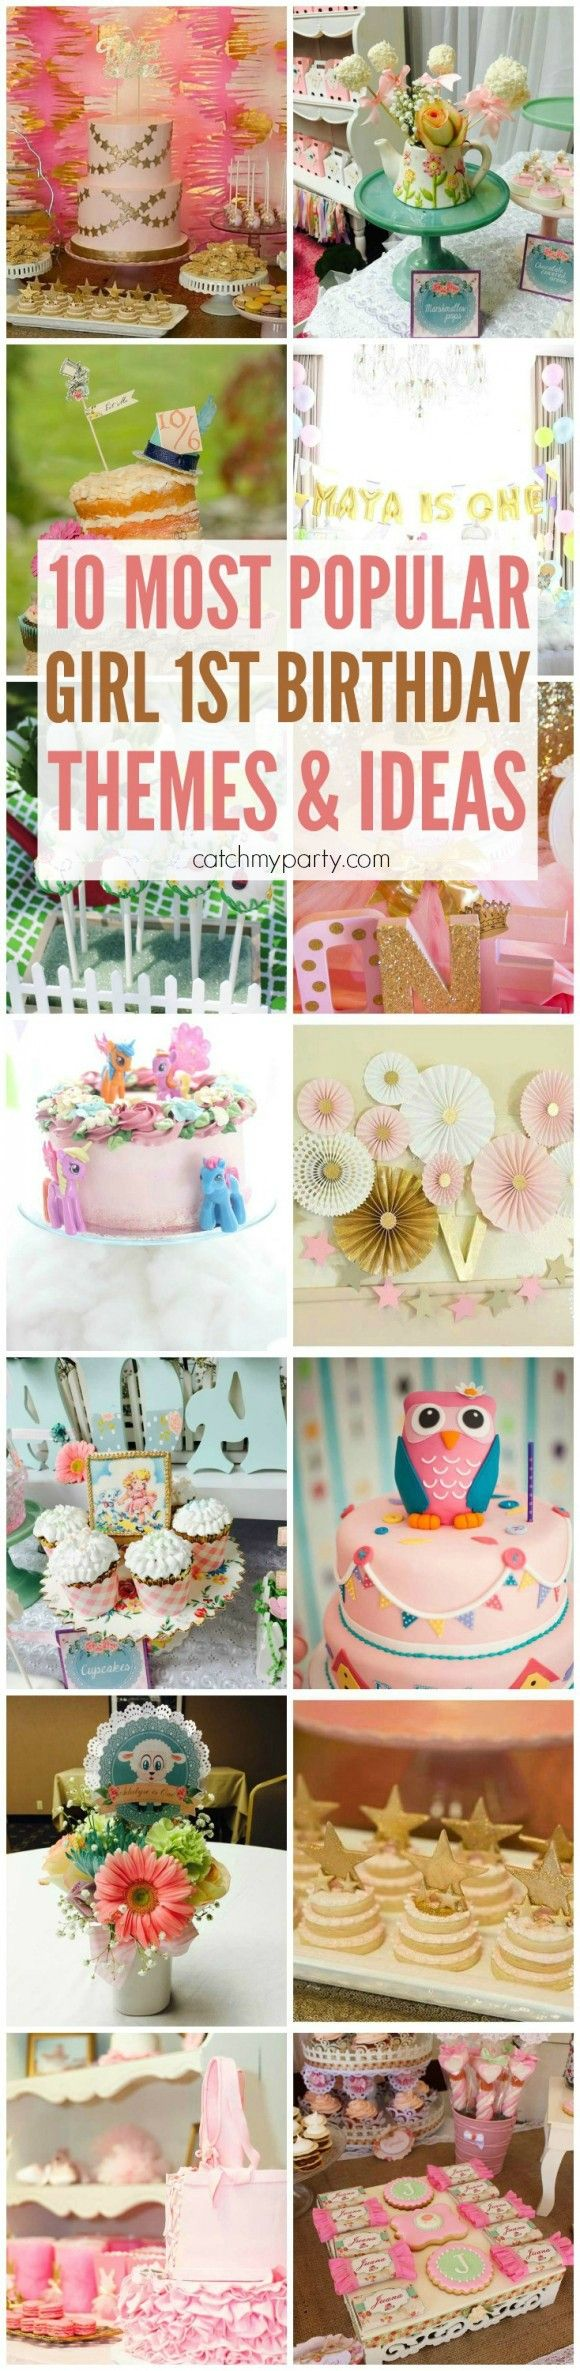 10 Most Popular Girl 1st Birthday Themes and ideas, including butterfly, owl, princess, pink, ballerina, and other themes! | CatchMyParty.com